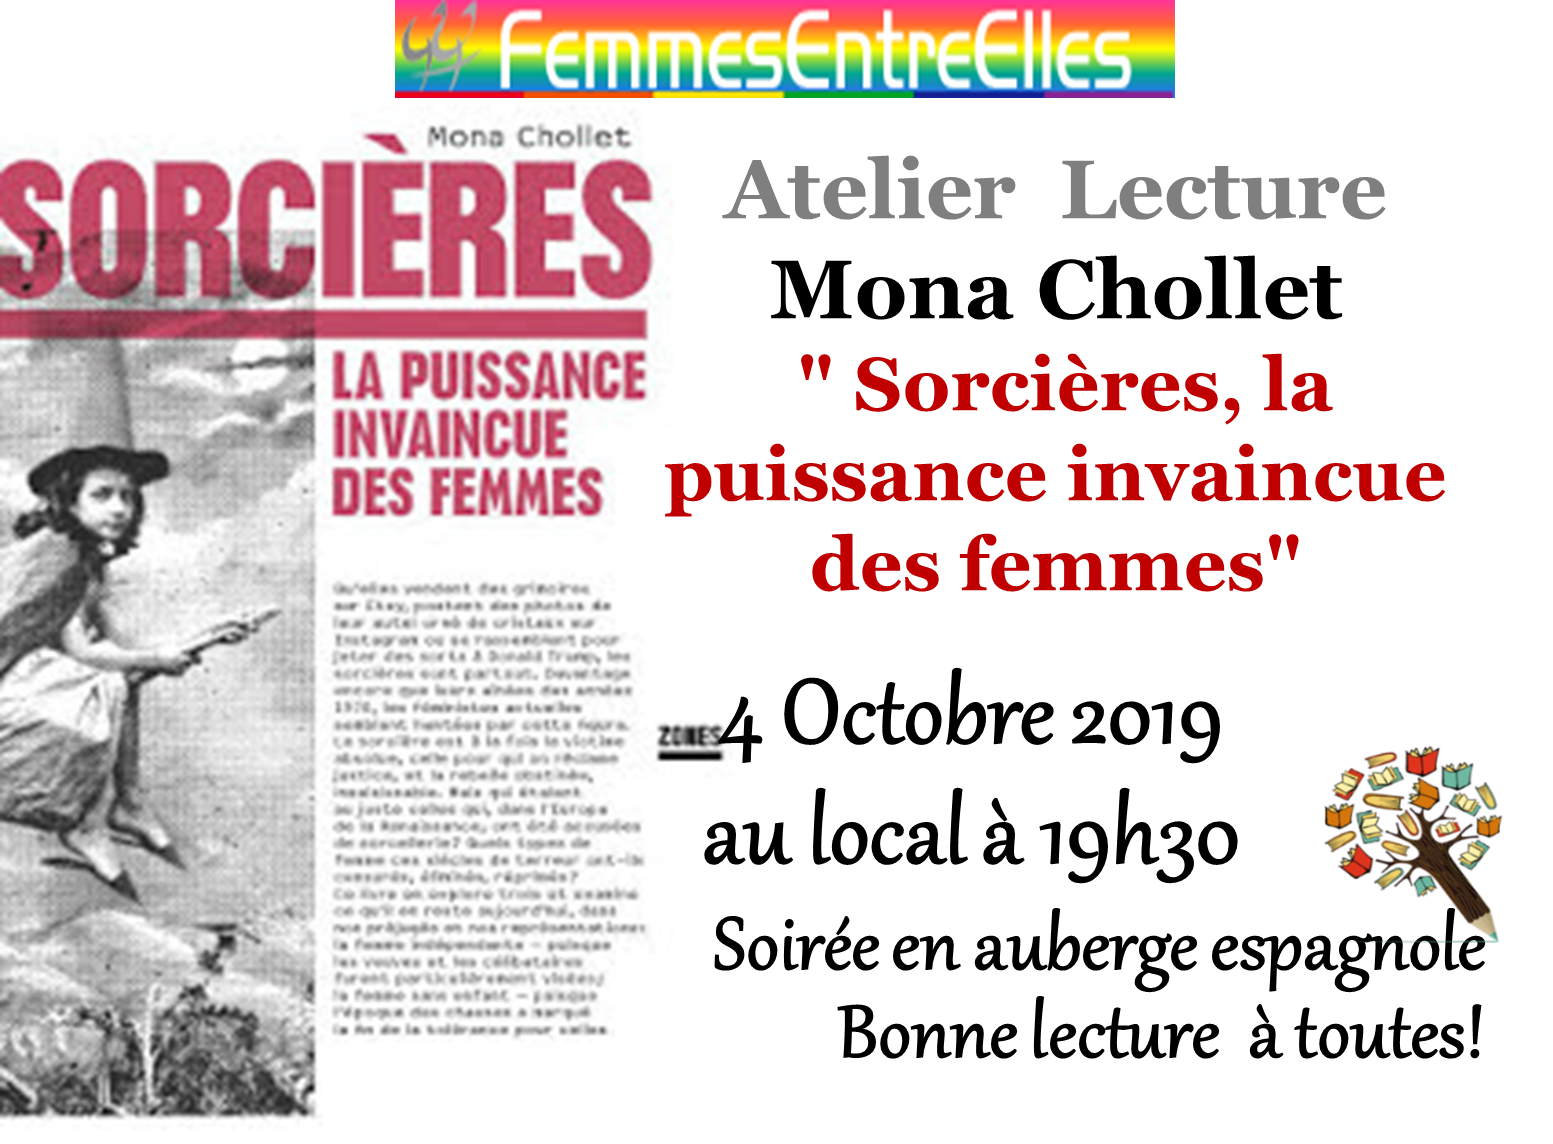 [FEE] : Atelier lecture le 4 Octobre 2019 au local à 19h30